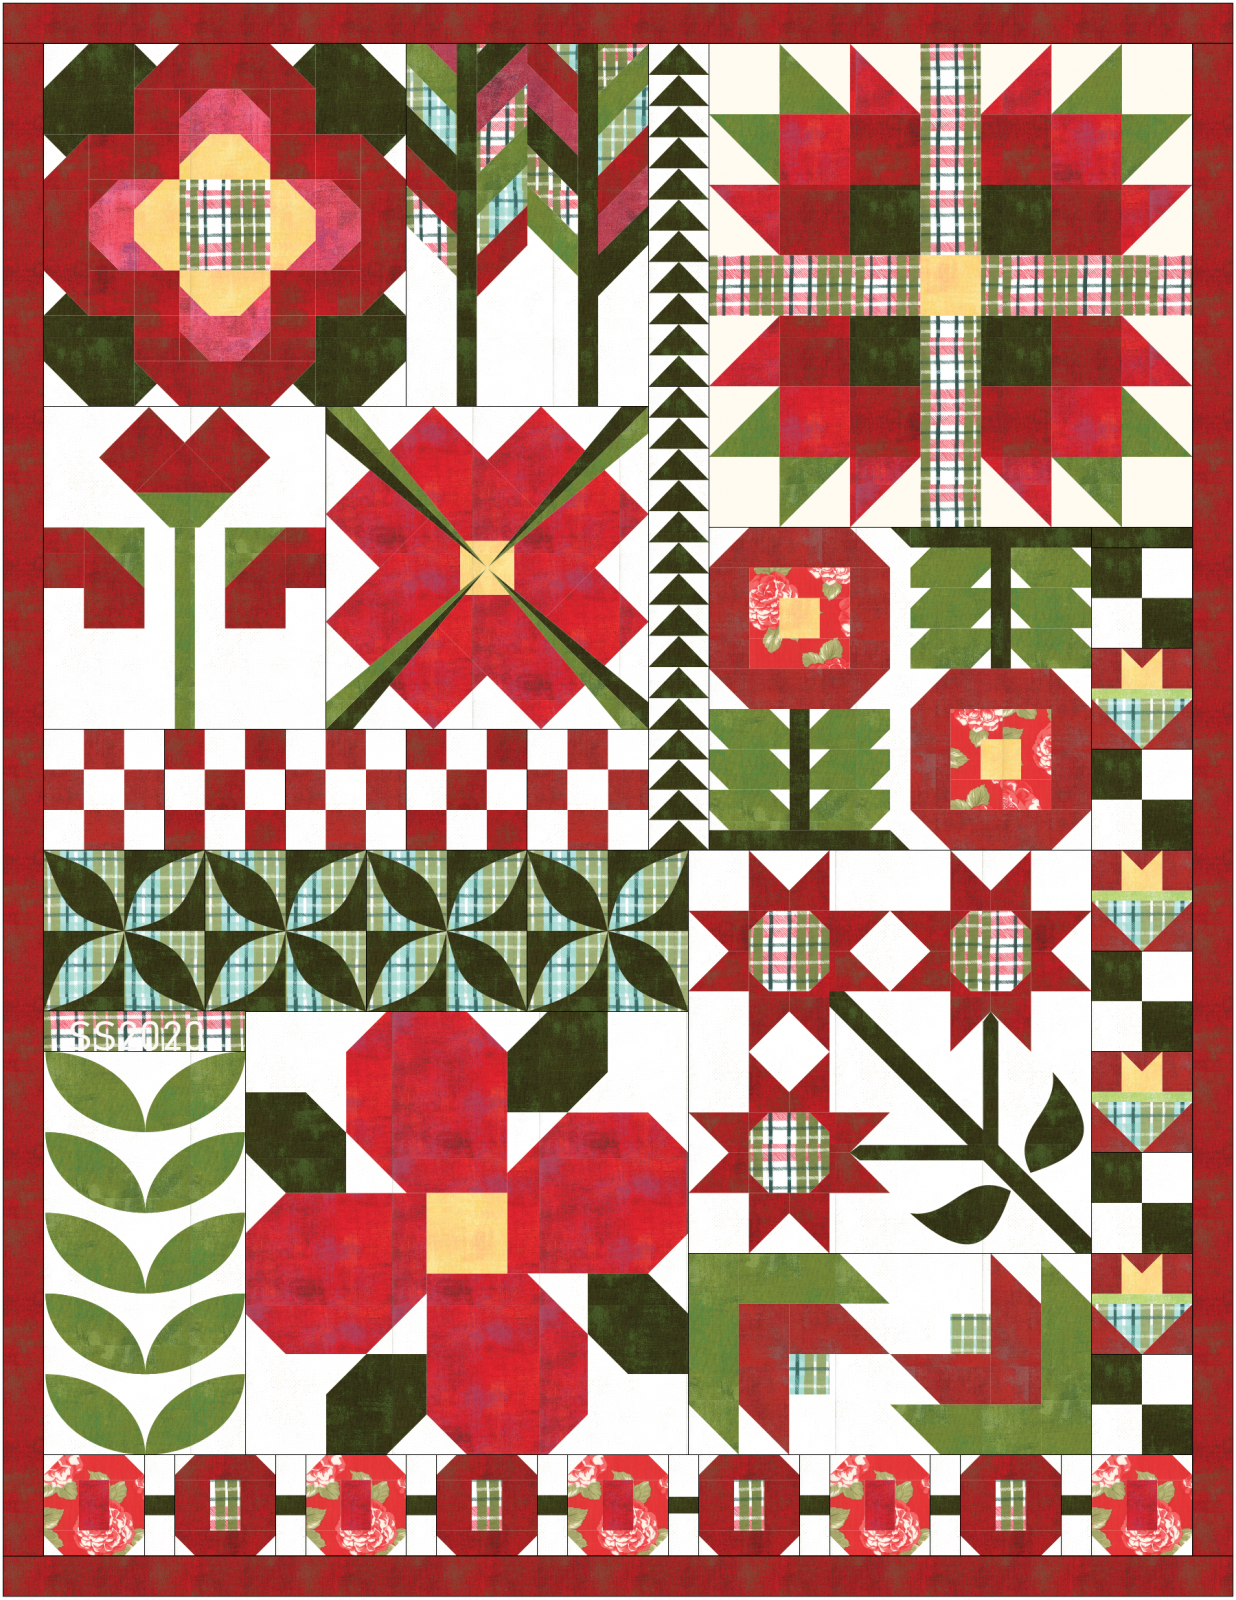 SS2020 Winter Quilt - Arrayed in Glory